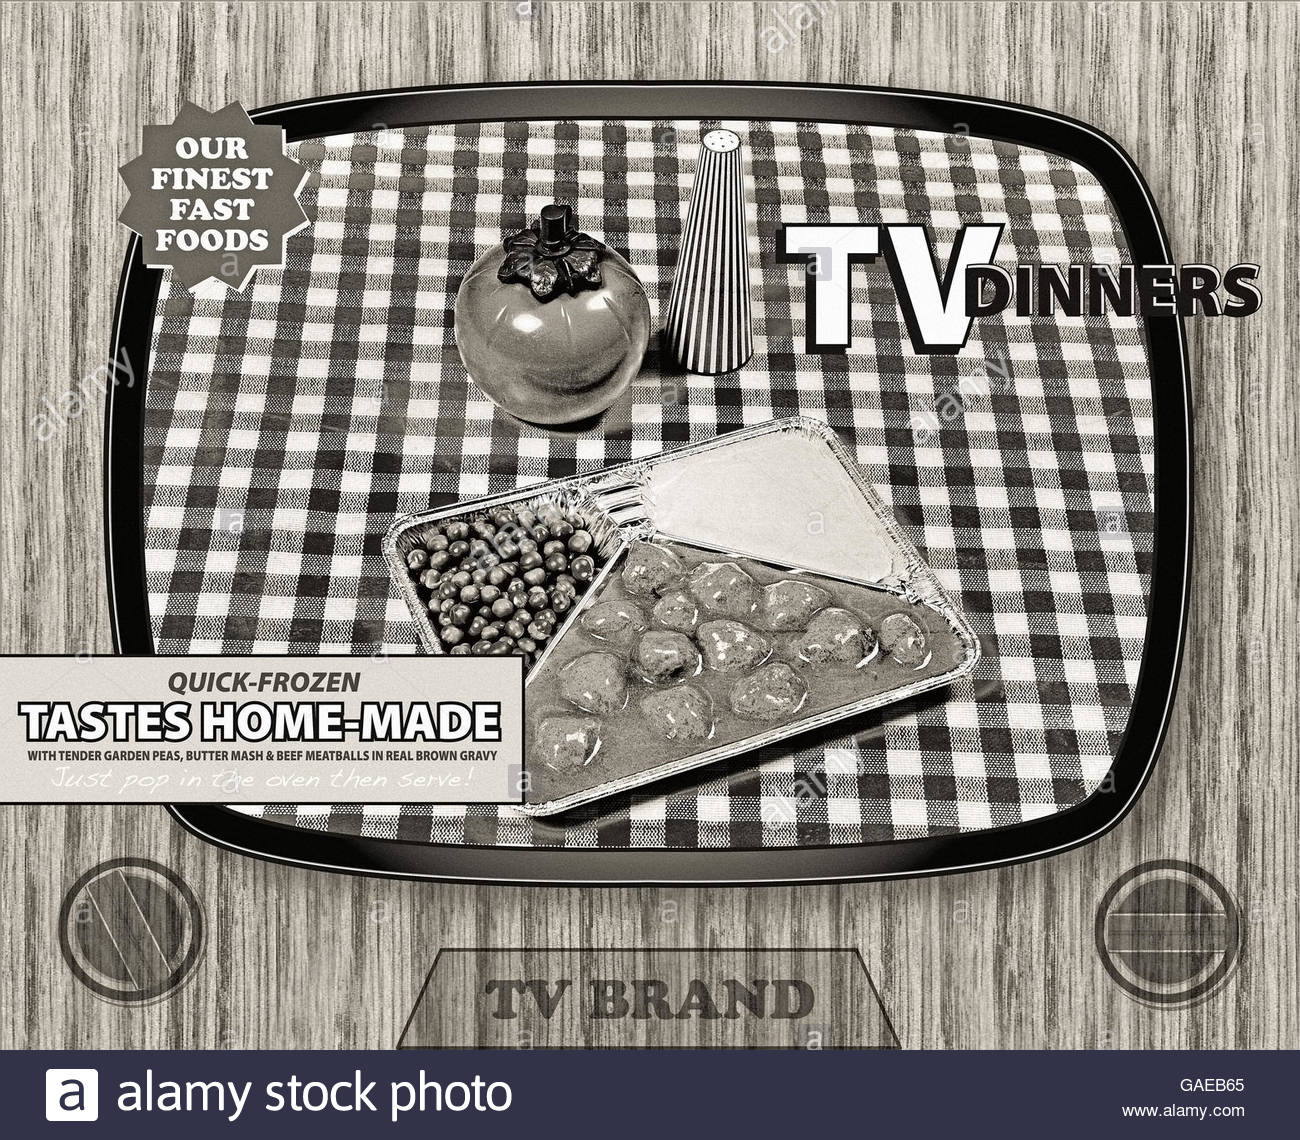 TV dinner tray vintage retro meal aluminum food dish packaging style - Stock Image